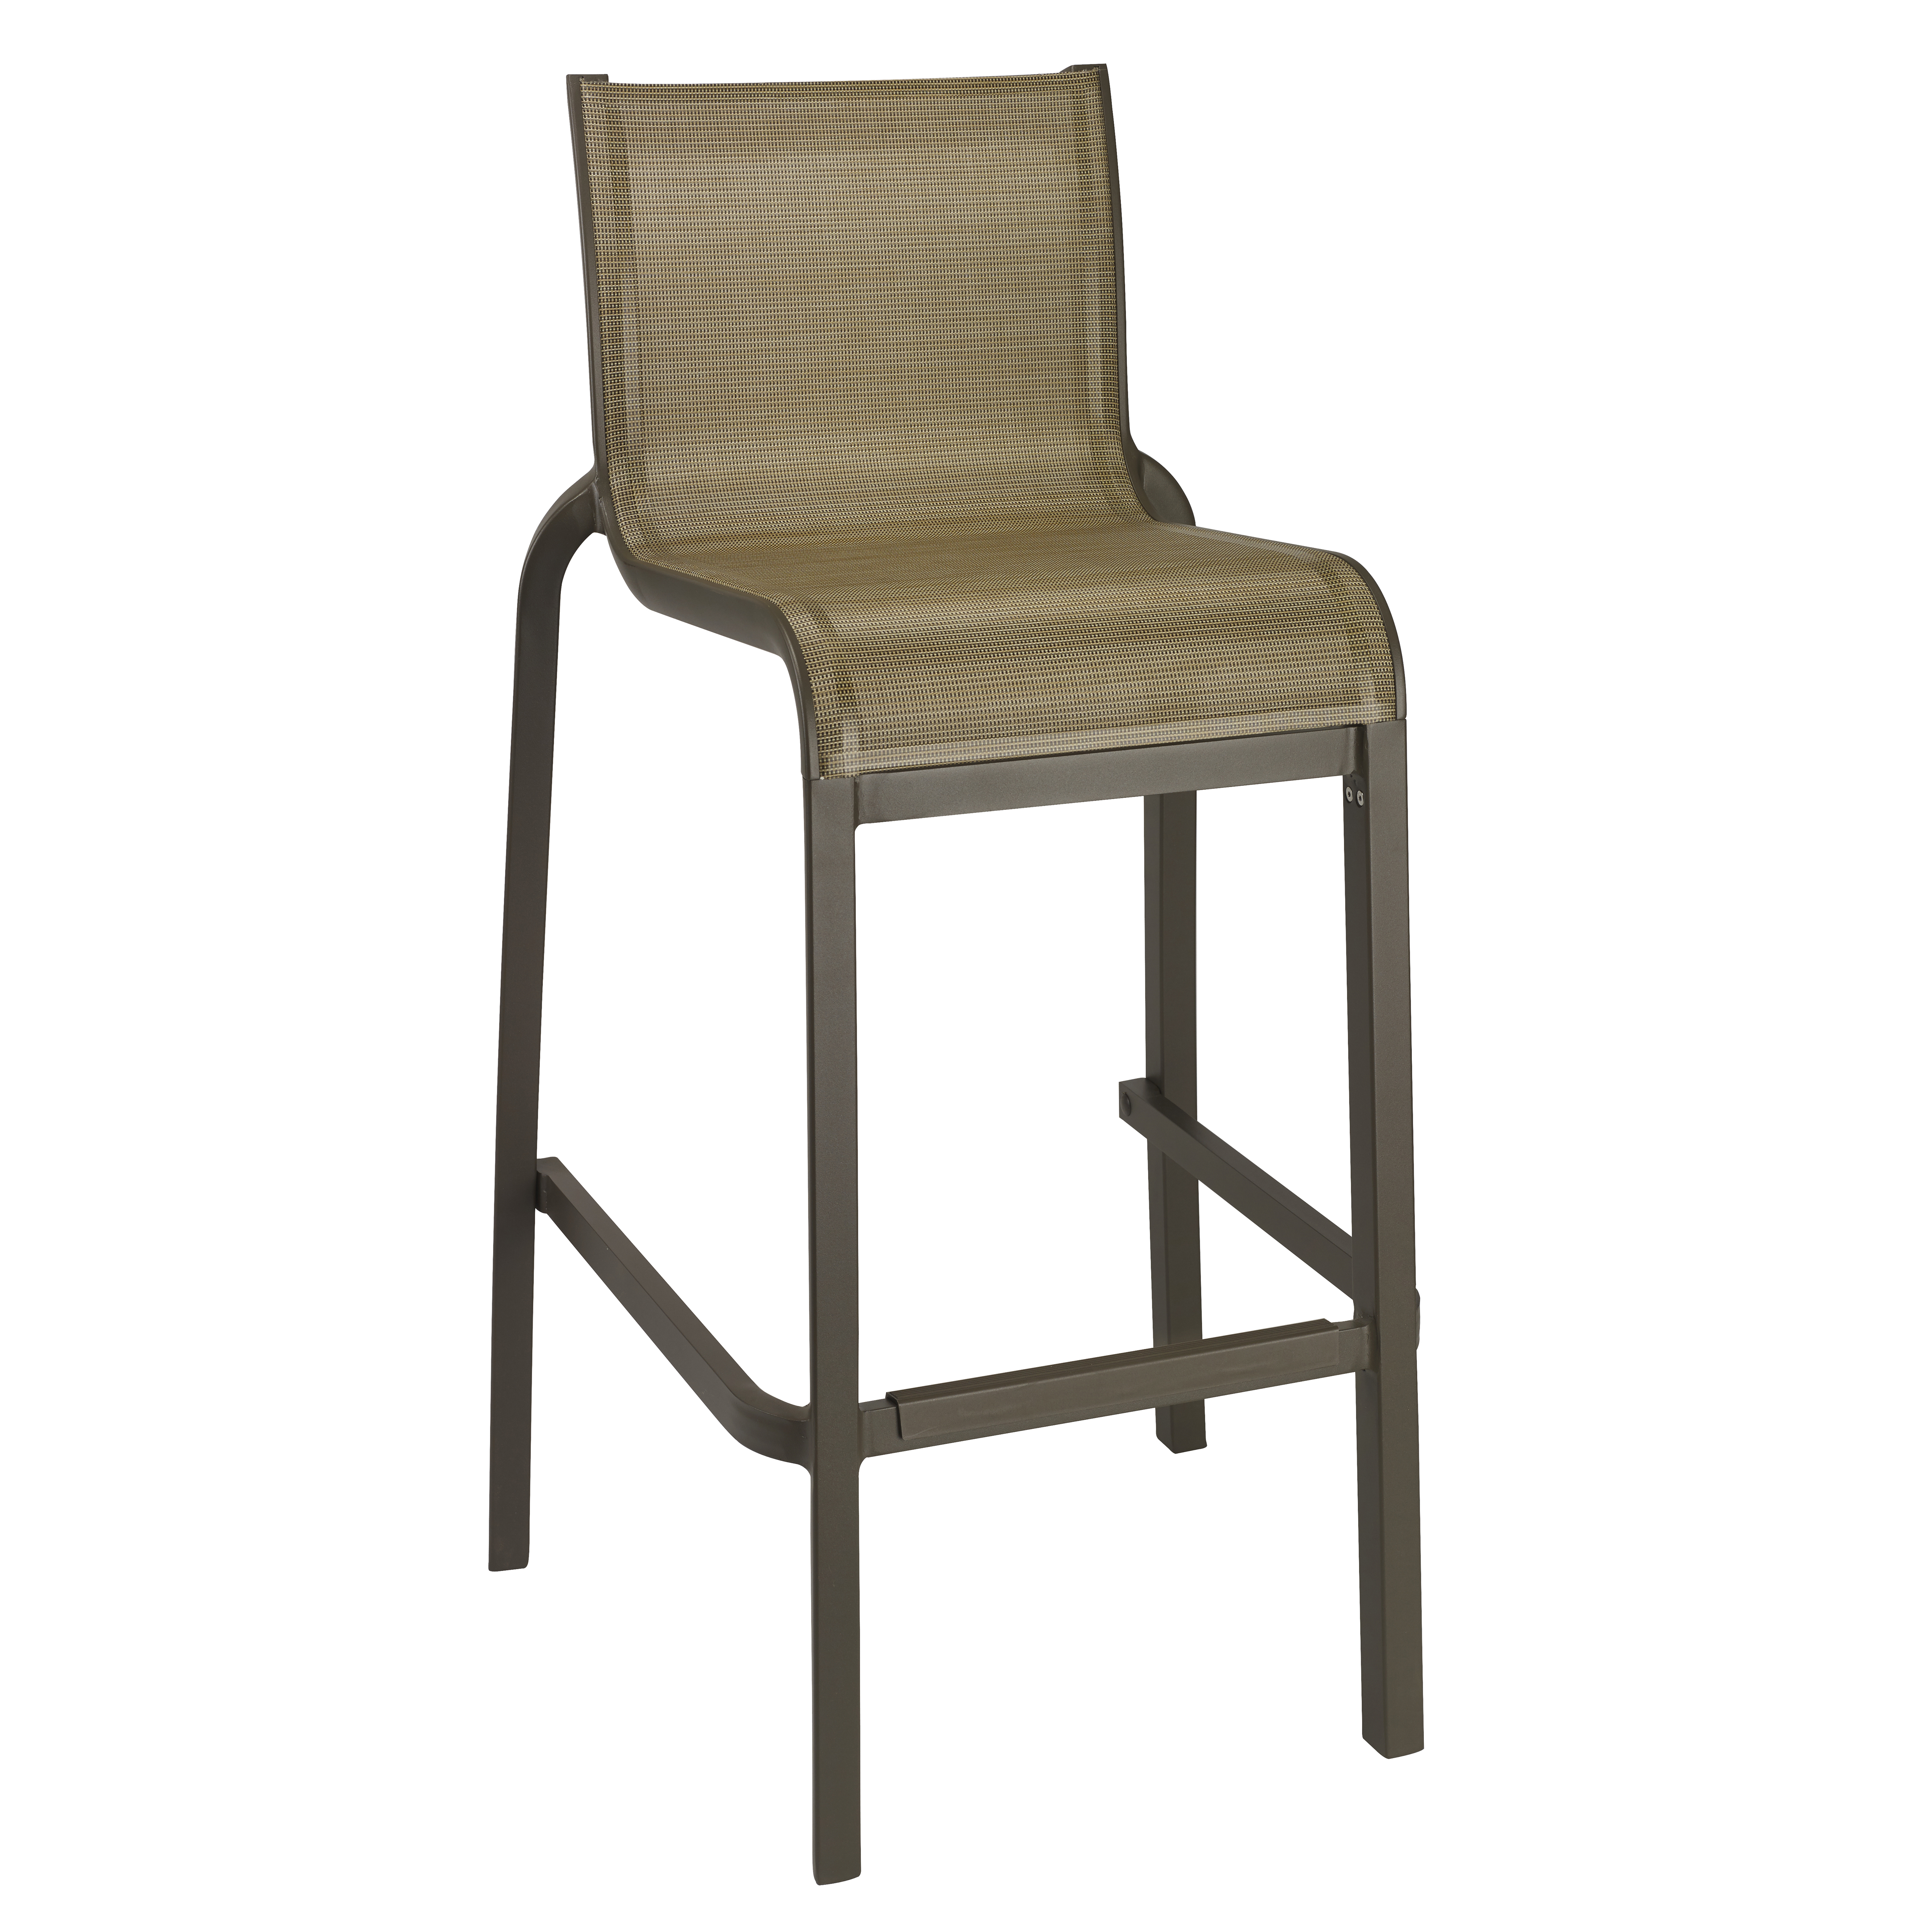 Grosfillex US300599 bar stool, stacking, outdoor